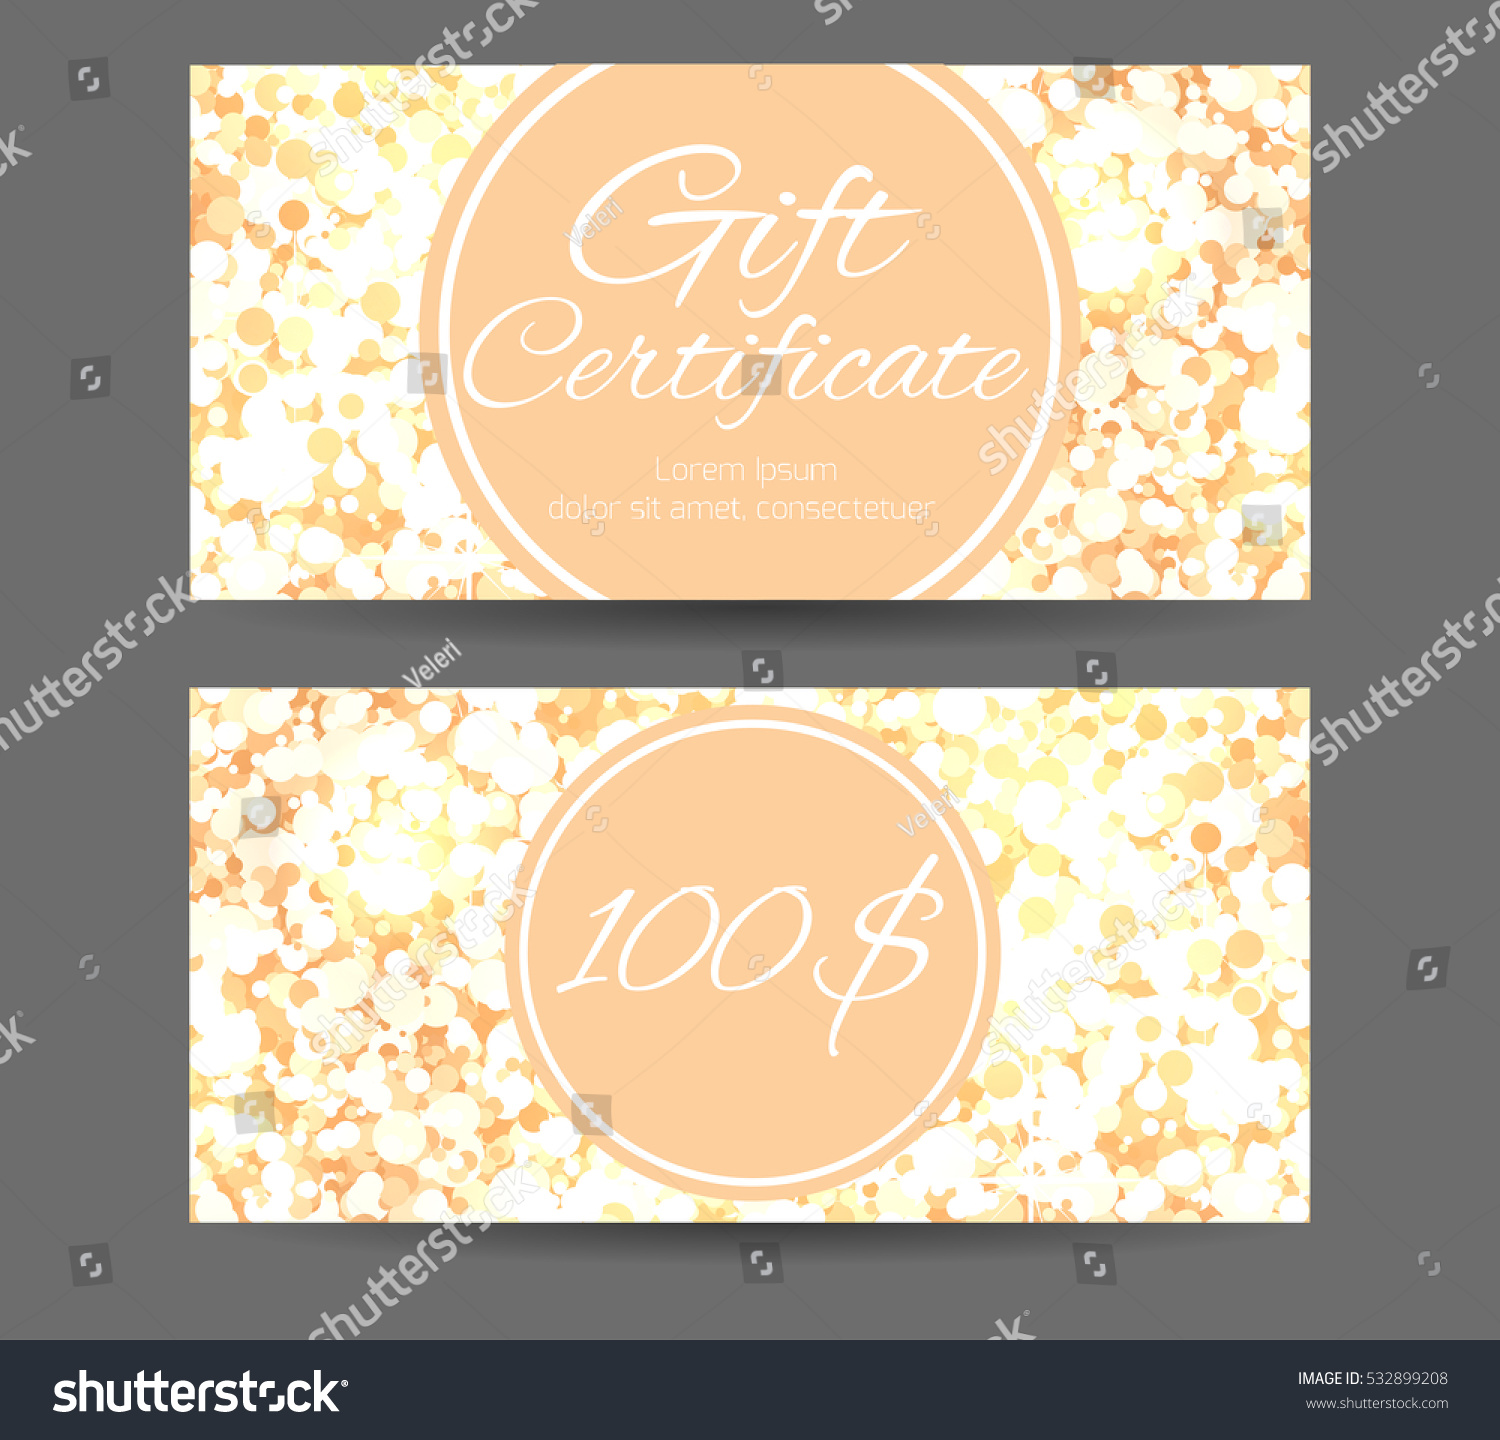 Luxury template gift certificate yoga studio stock vector luxury template gift certificate for yoga studio spa center massage parlor beauty salon yadclub Images